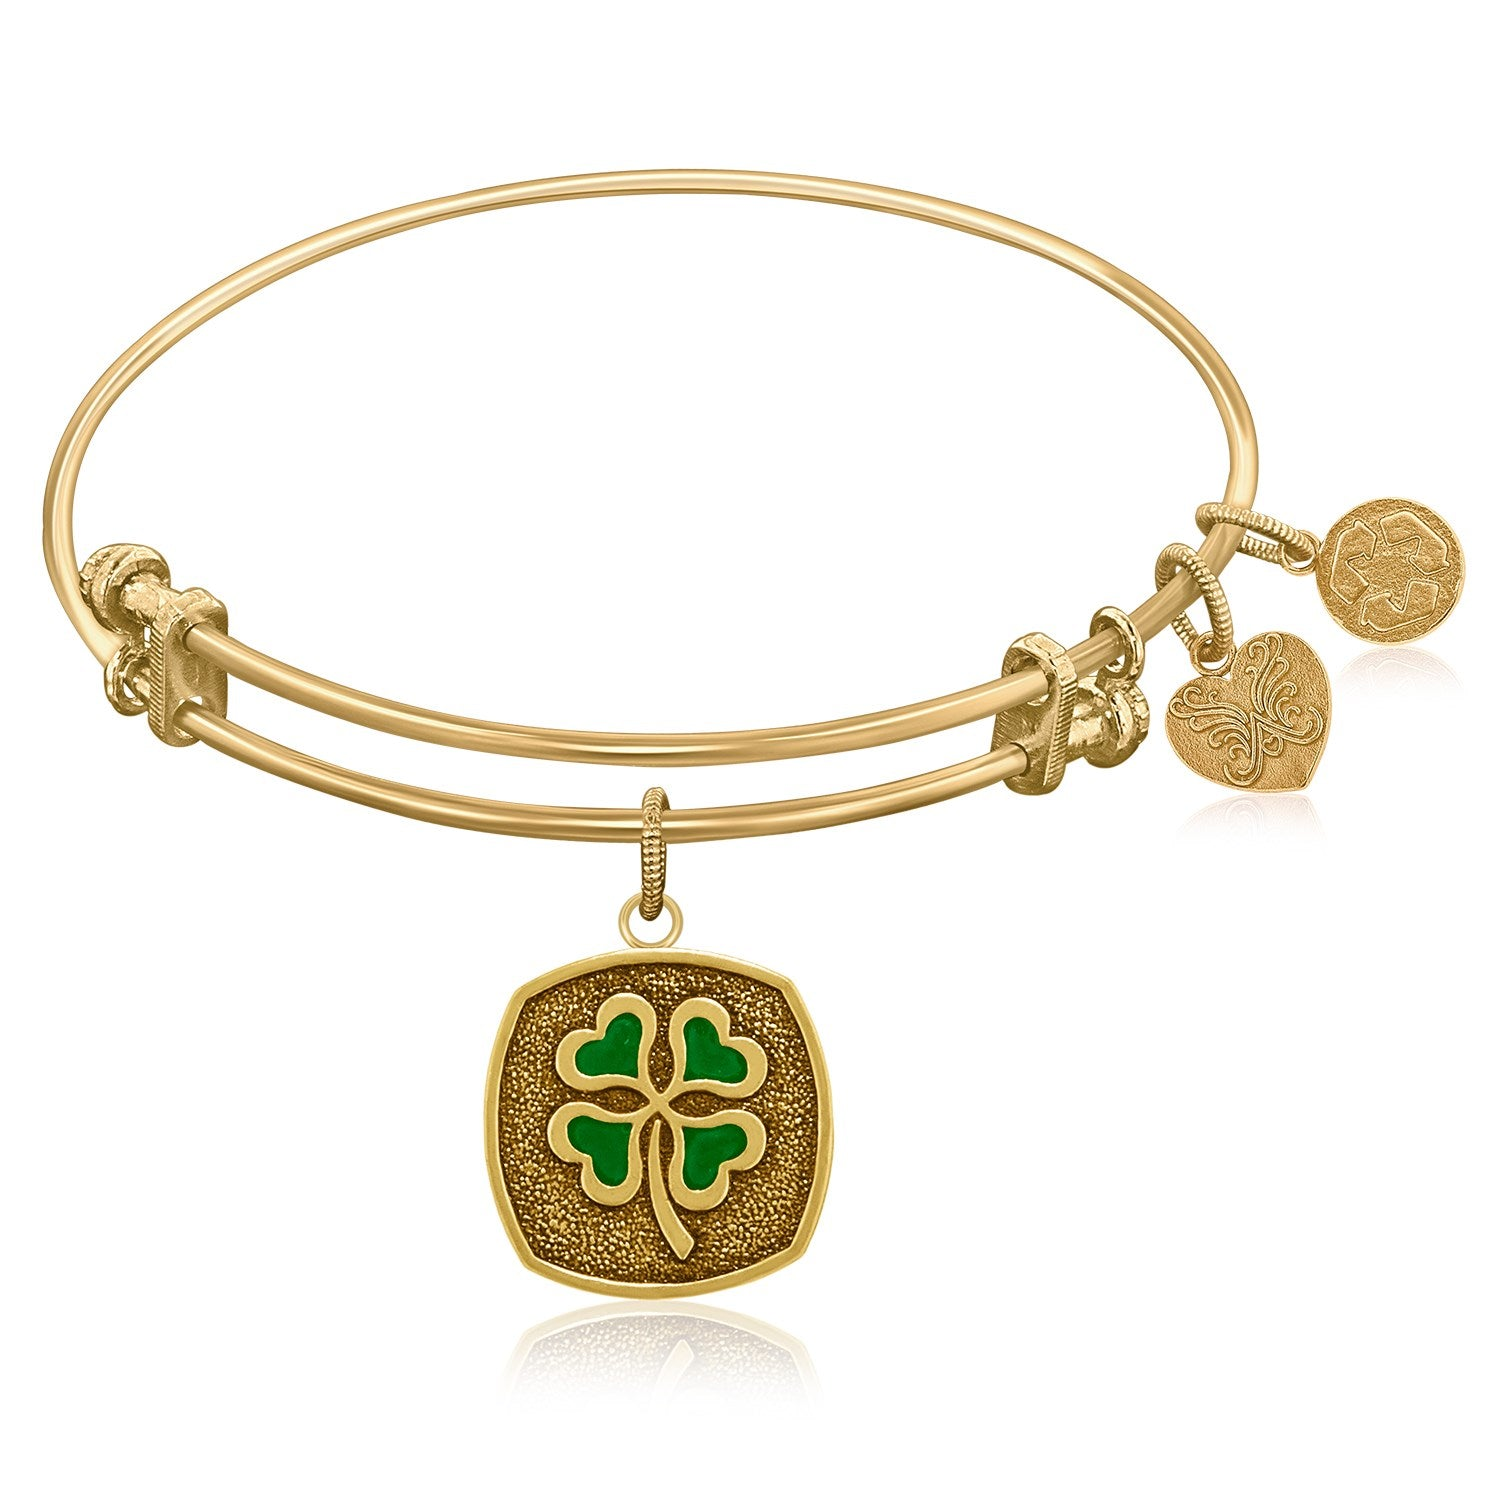 Luxury London Style Original Expandable Bangle in Yellow Tone Brass with Four Leaf Clover Luck Symbol